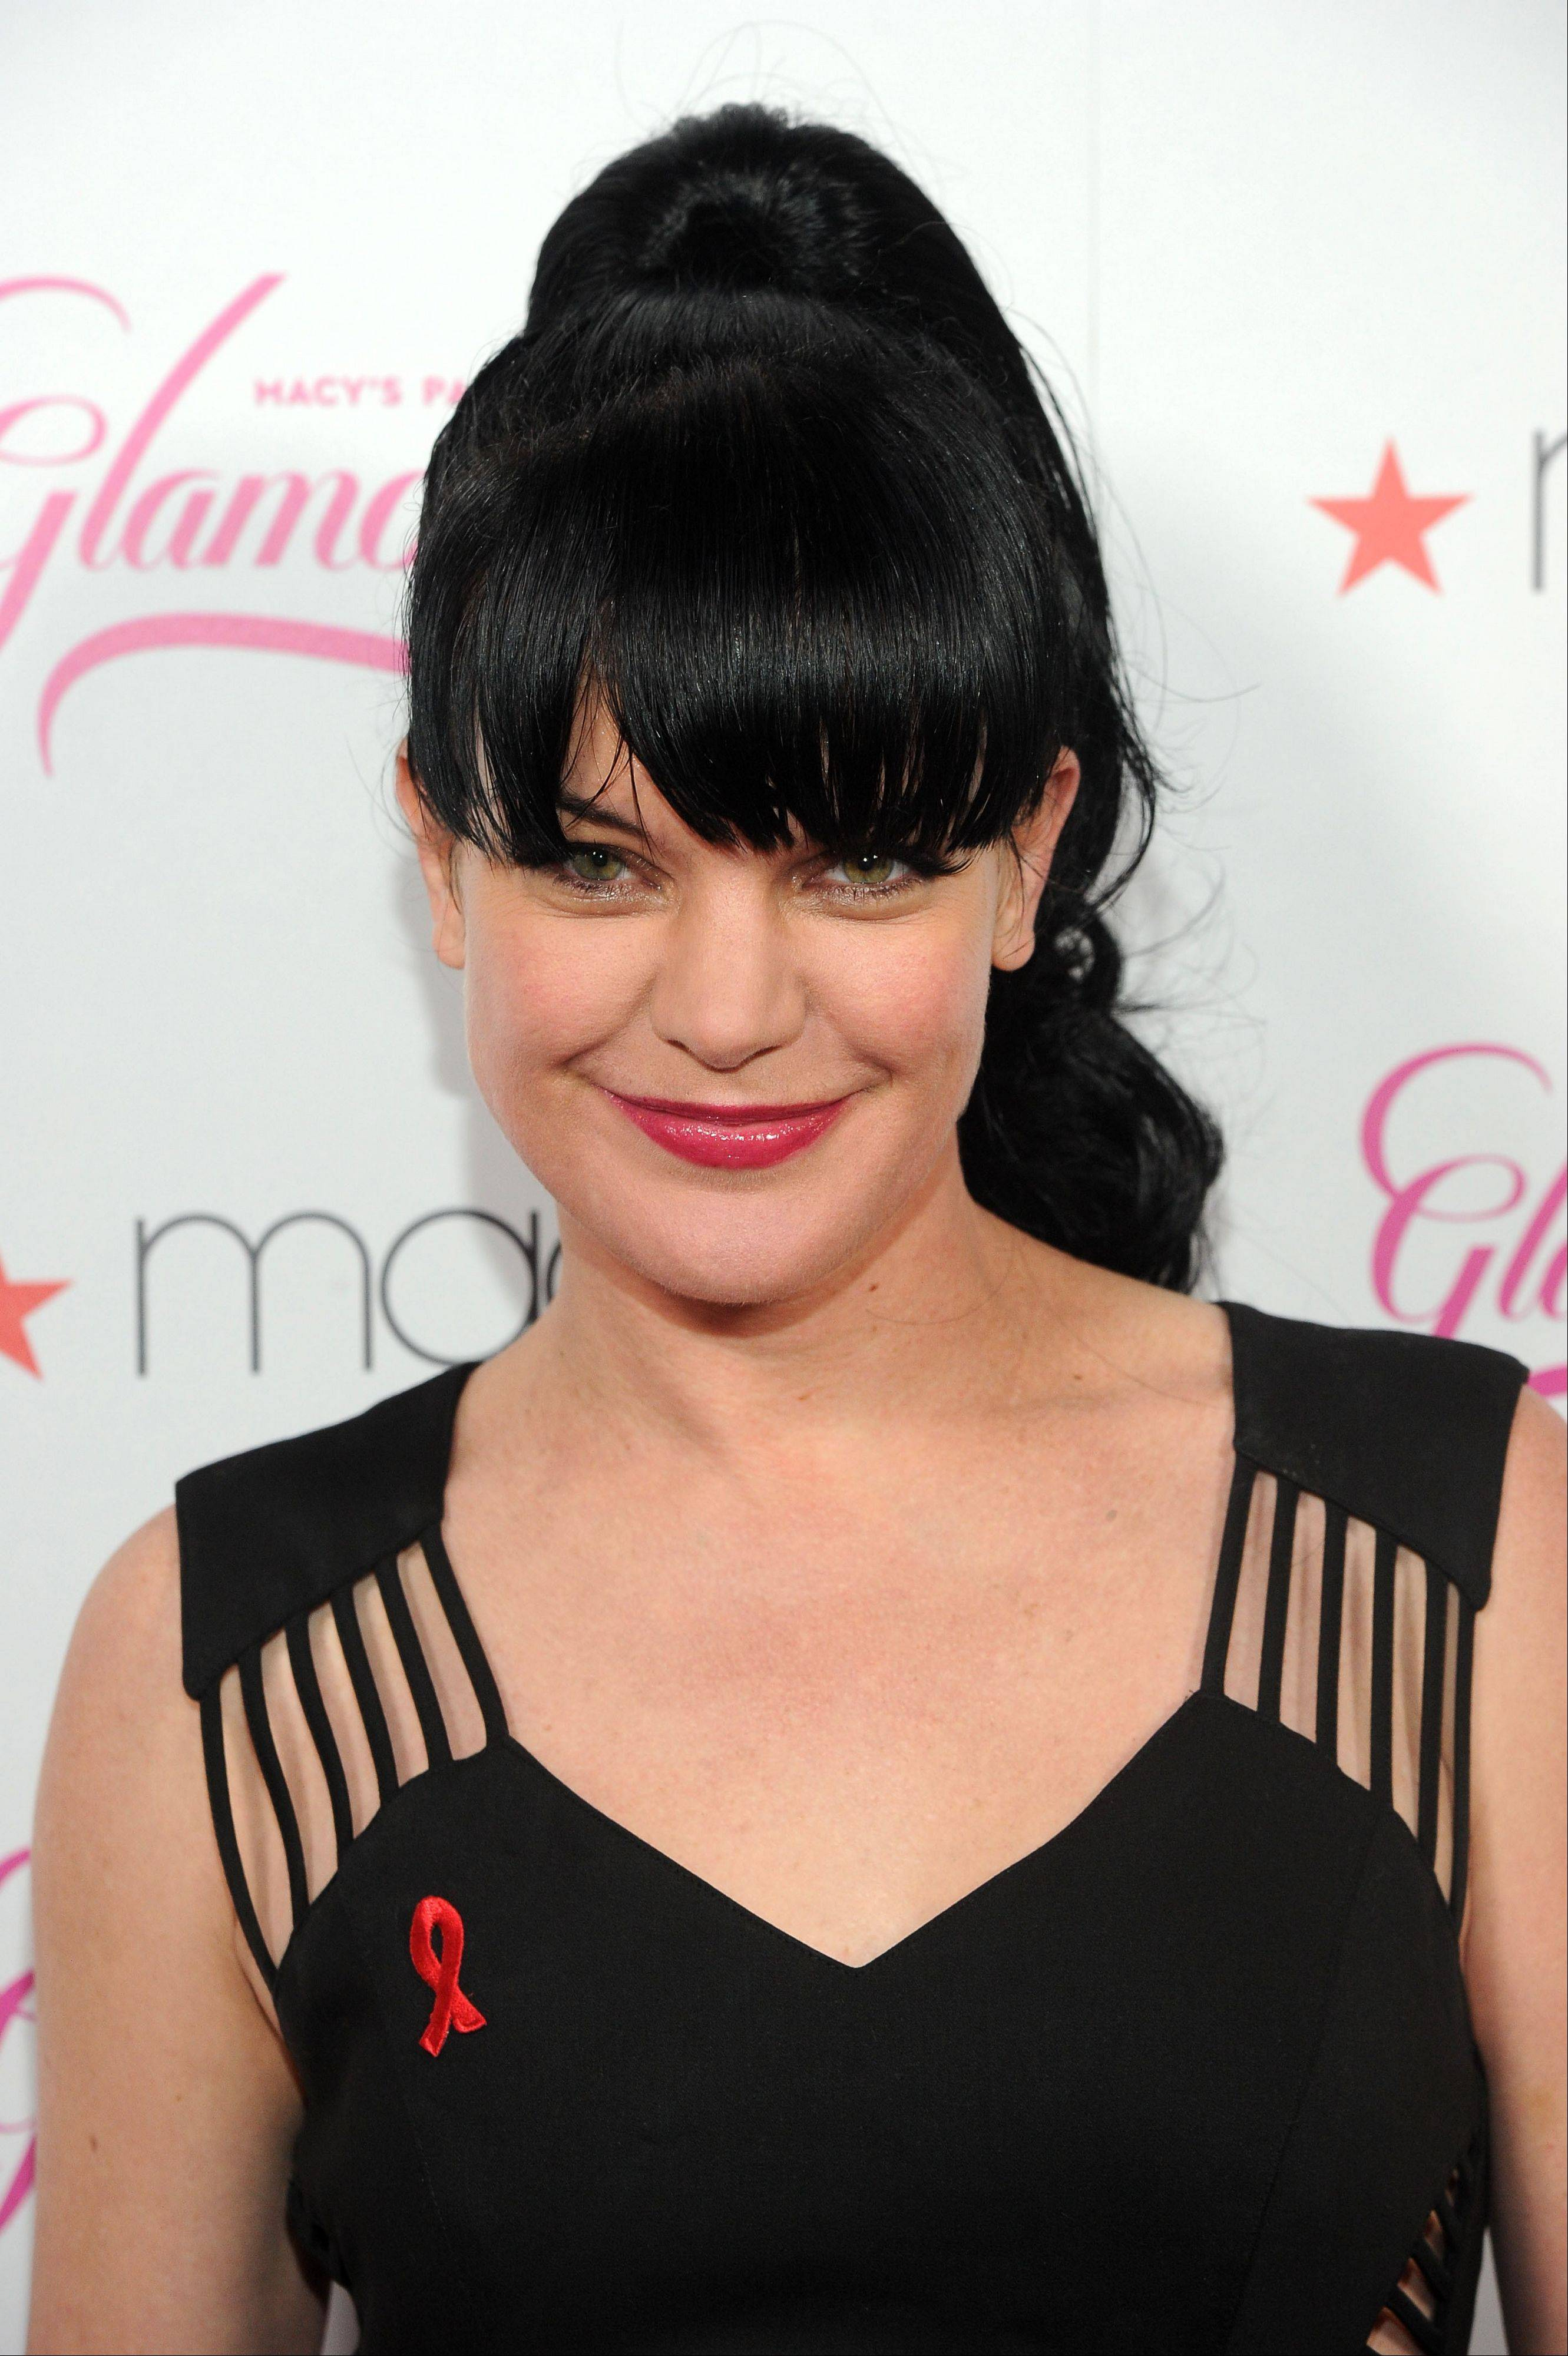 Image result for Abby Sciuto